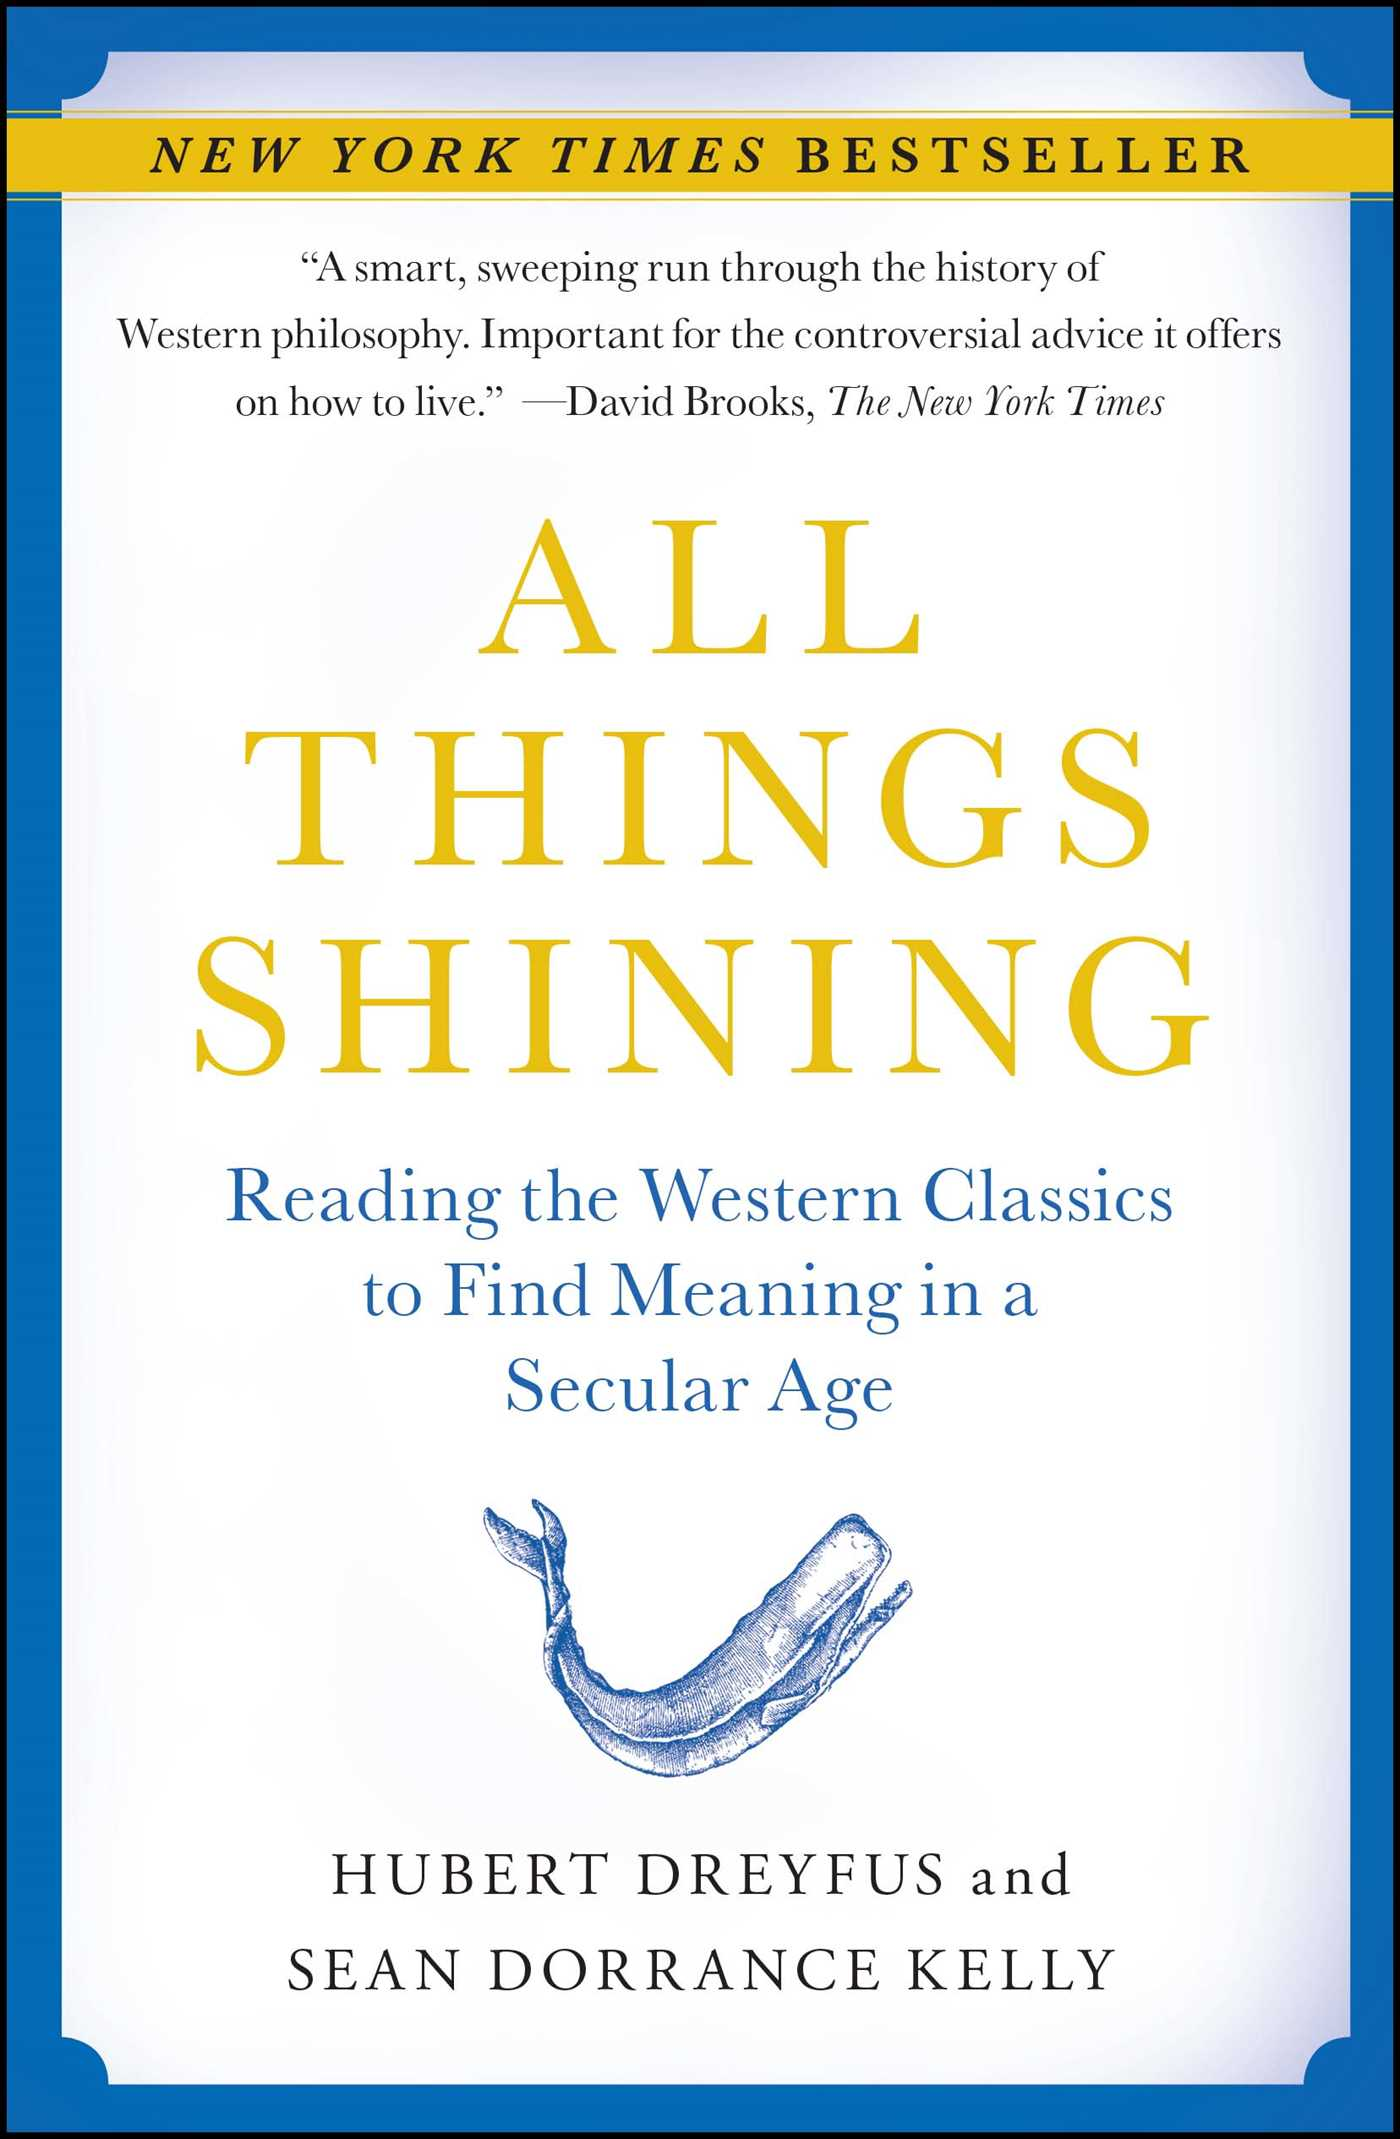 All-things-shining-9781439101704_hr